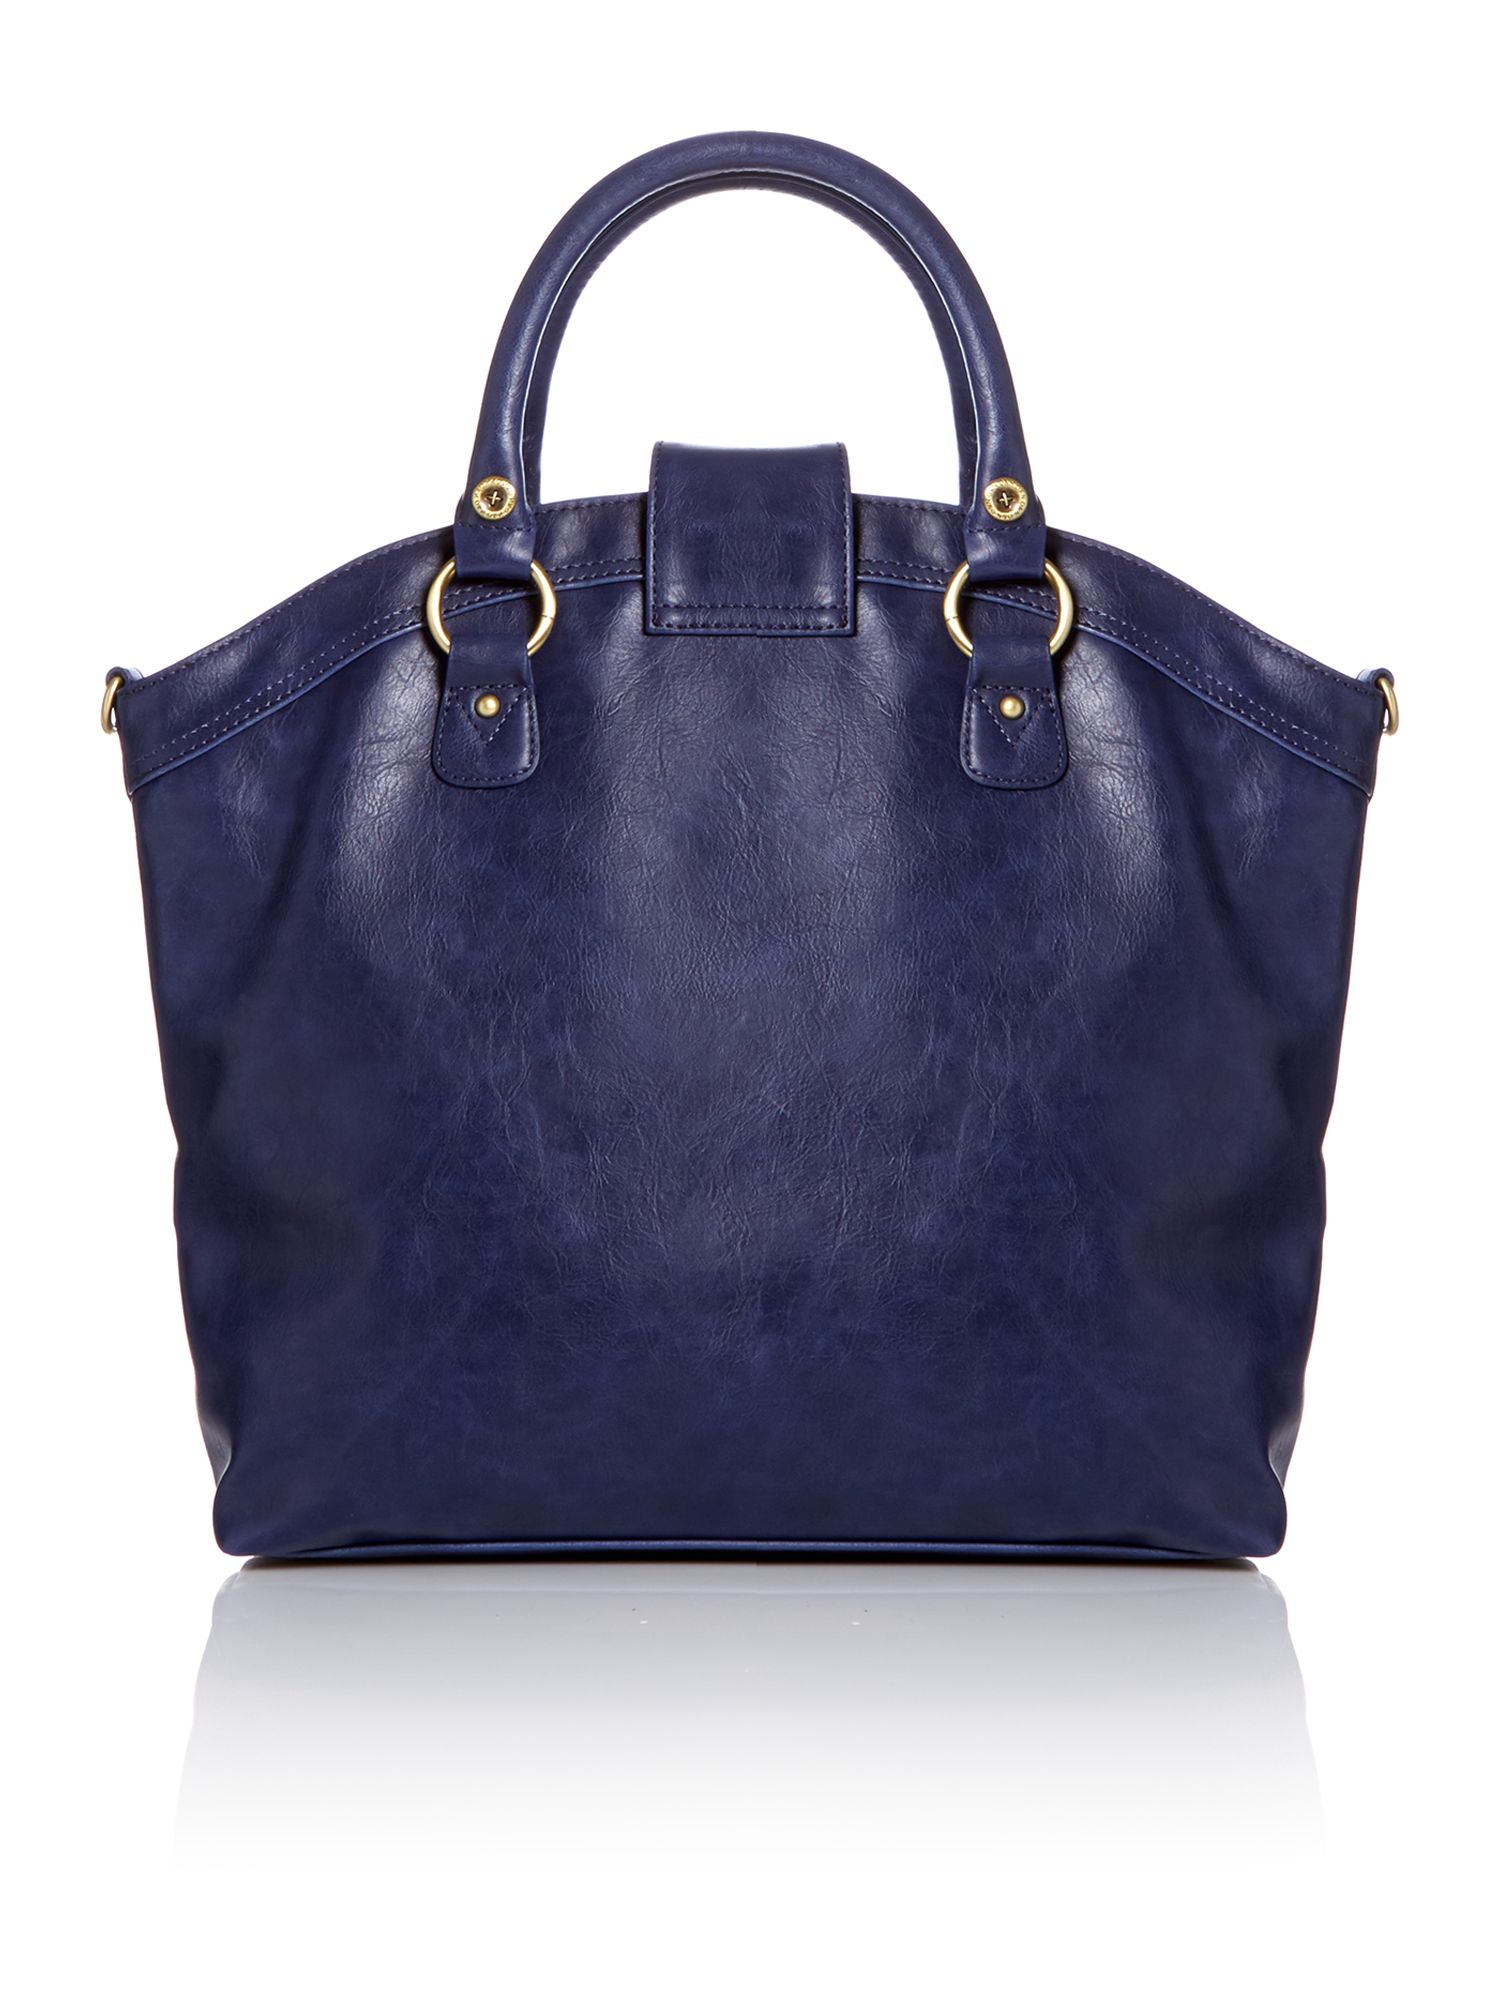 Jonah blue large tote bag